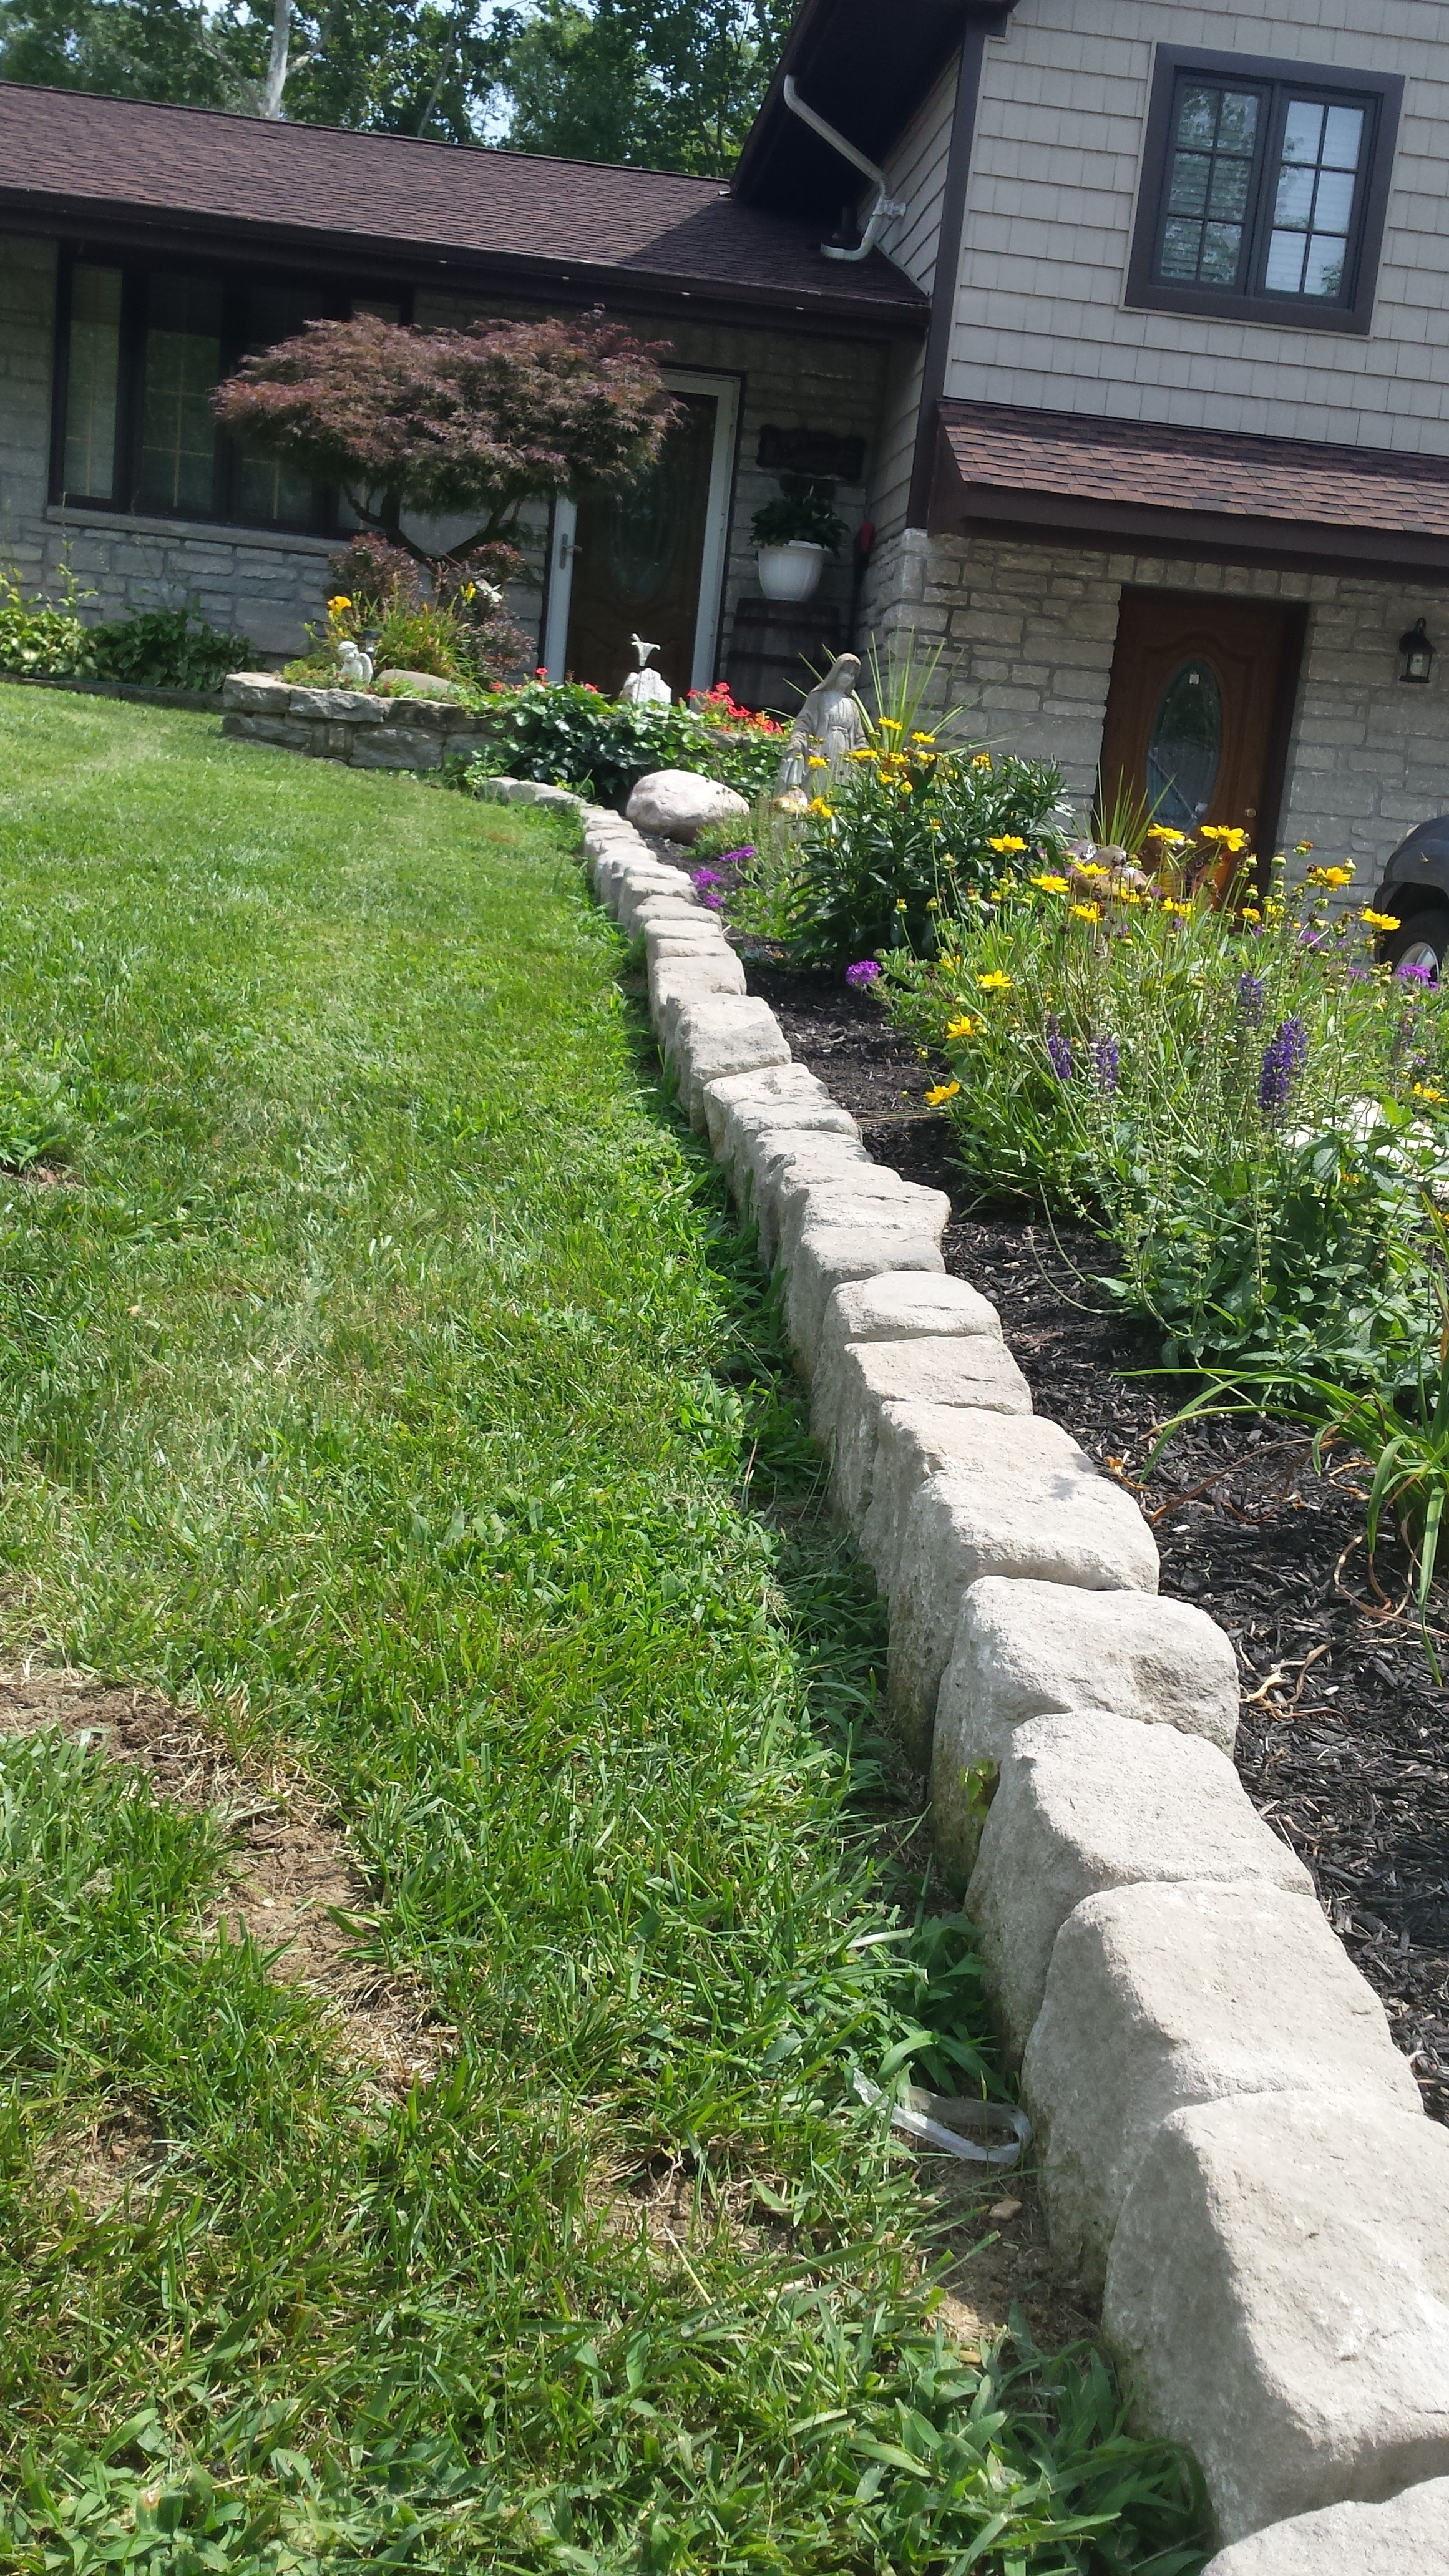 Limestone garden edging garden ideas - What is lime used for in gardening ...